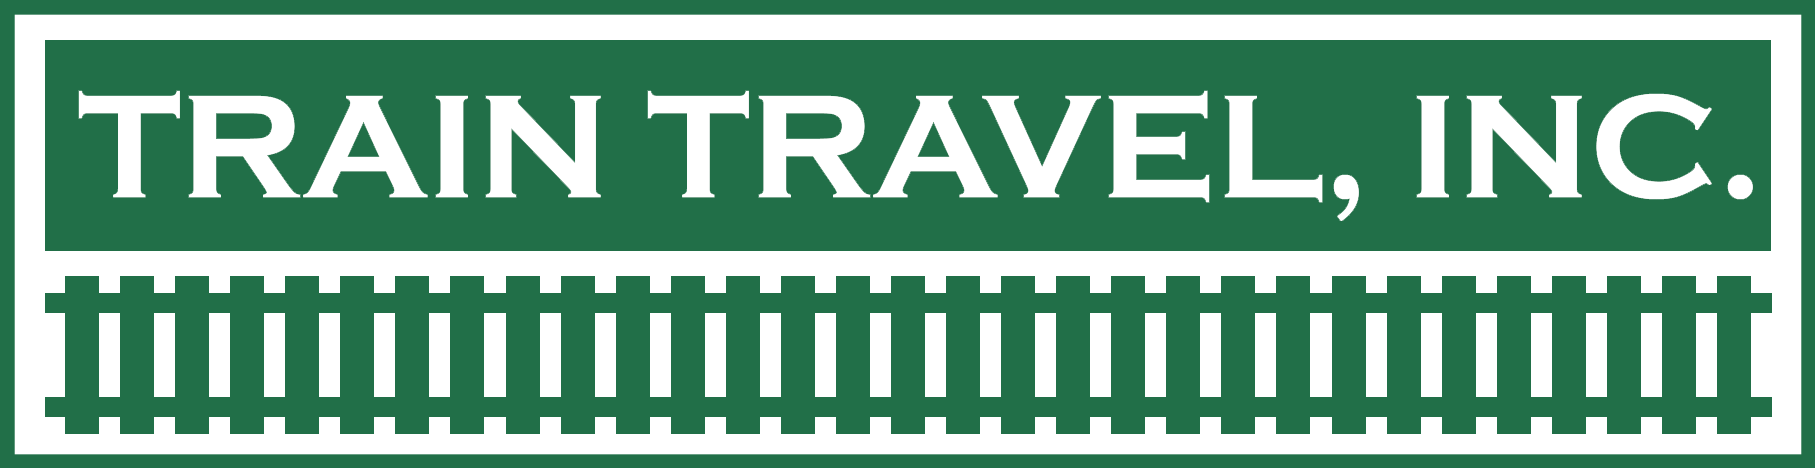 Train Travel, Inc.